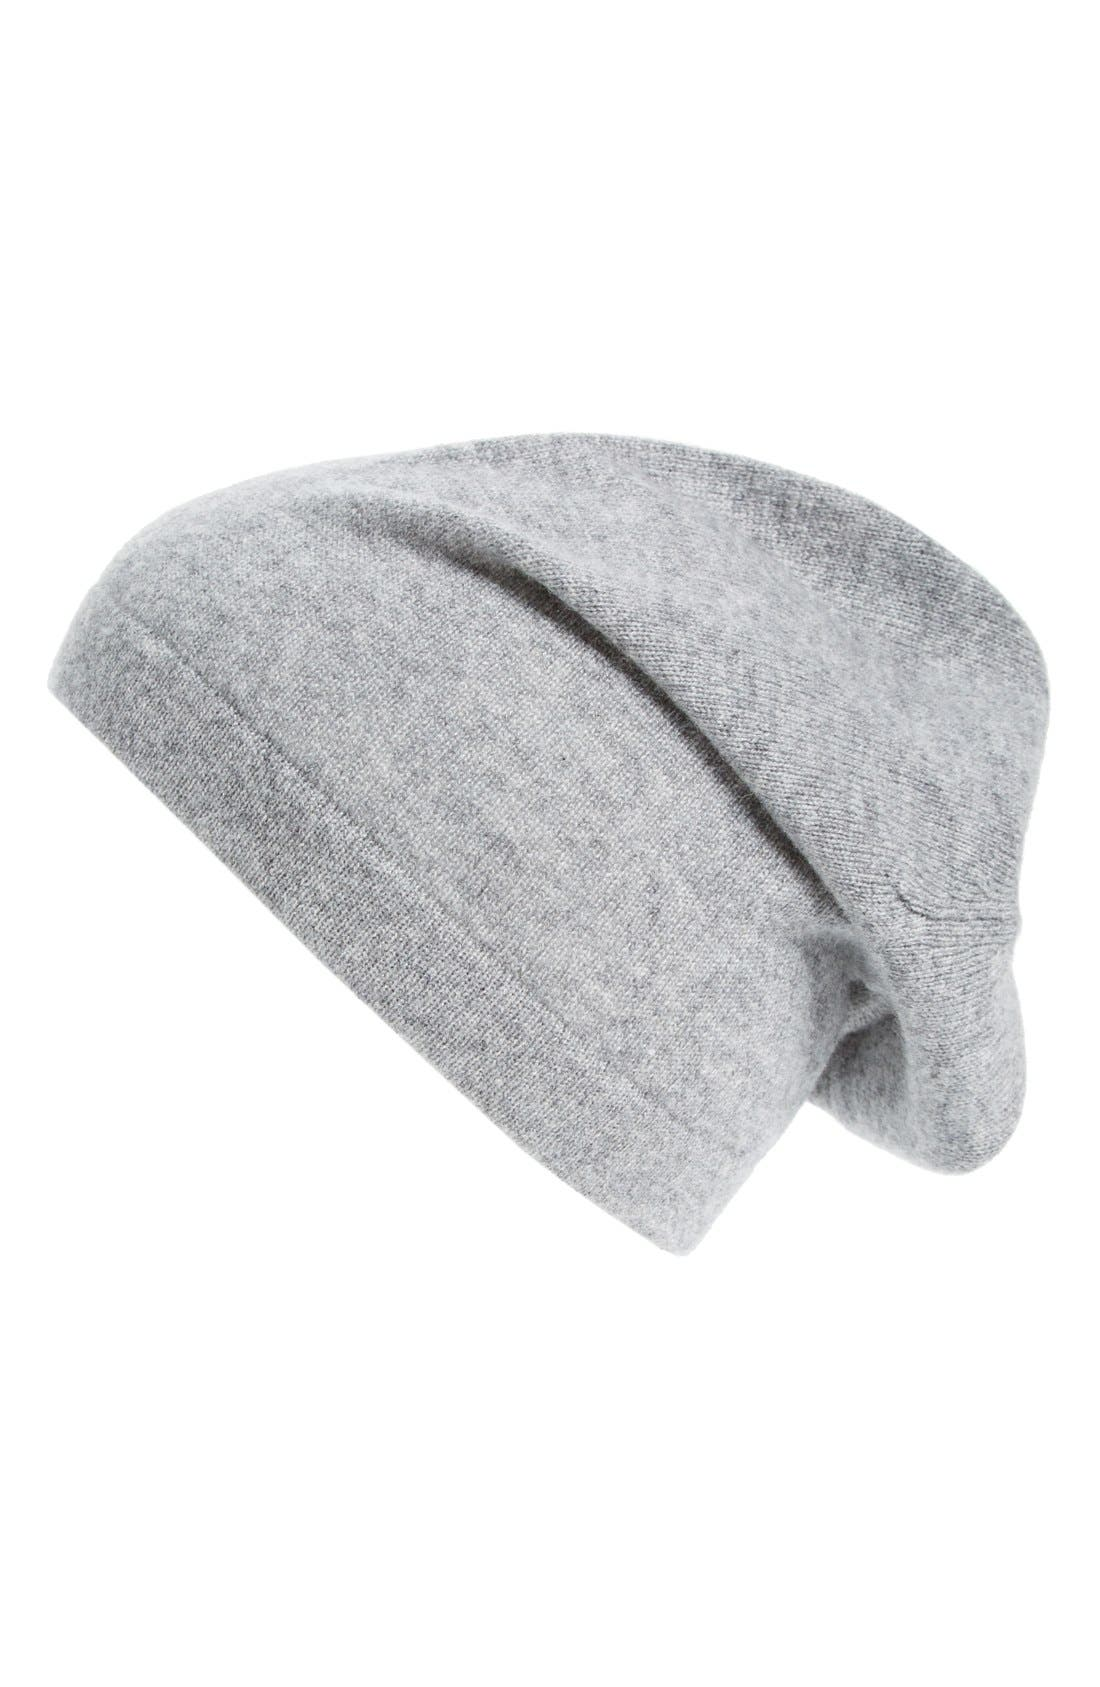 Alternate Image 1 Selected - The Rail Cashmere Knit Cap